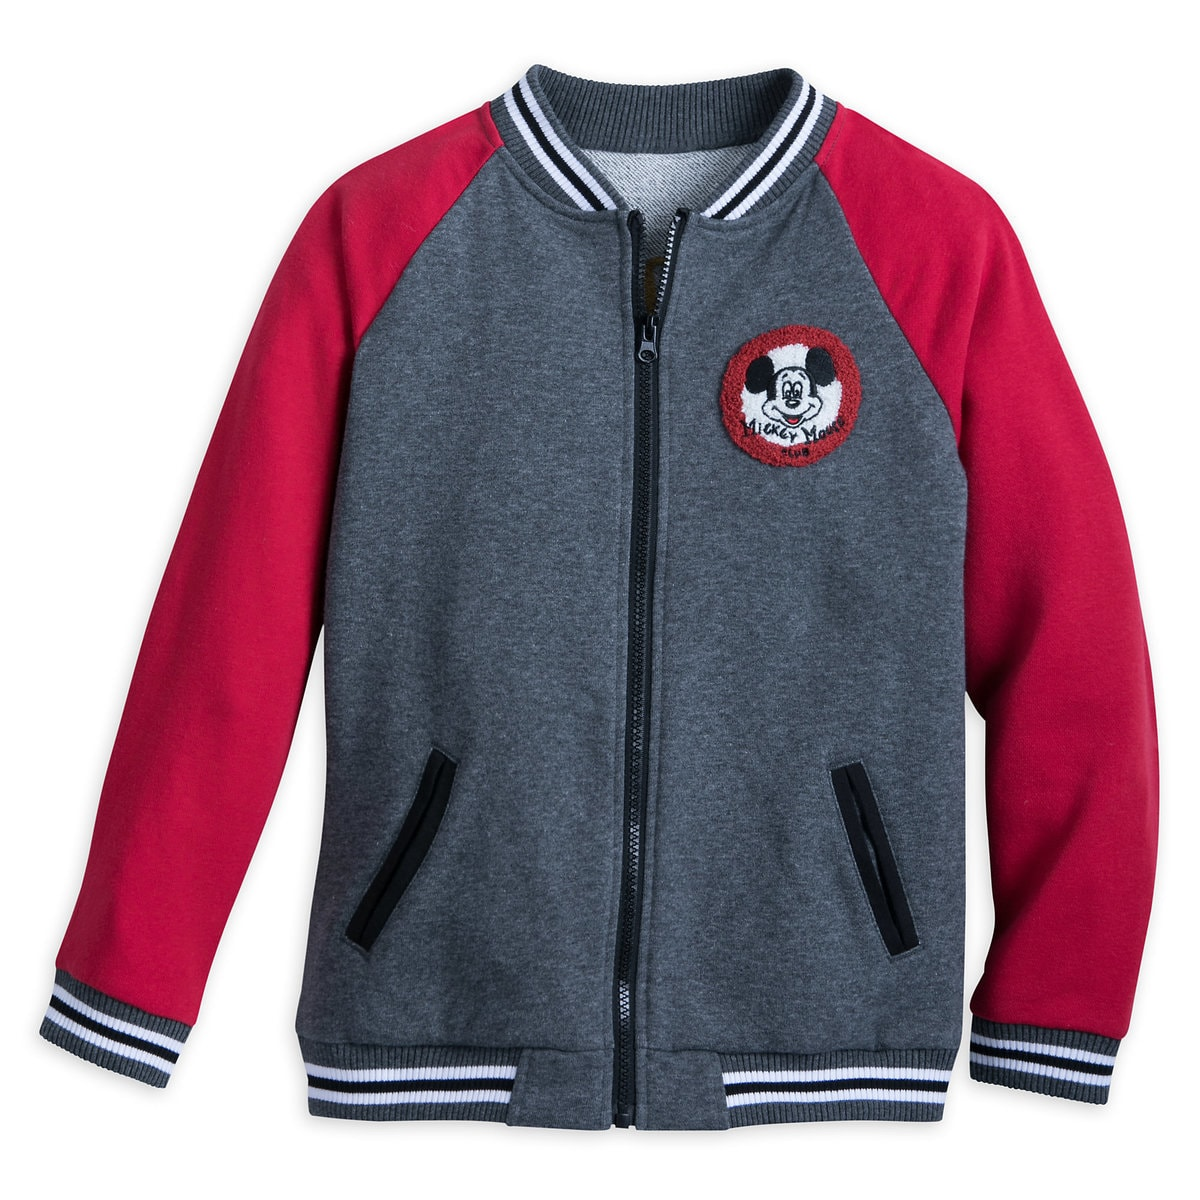 13785d032 Product Image of The Mickey Mouse Club Varsity Jacket for Boys # 1